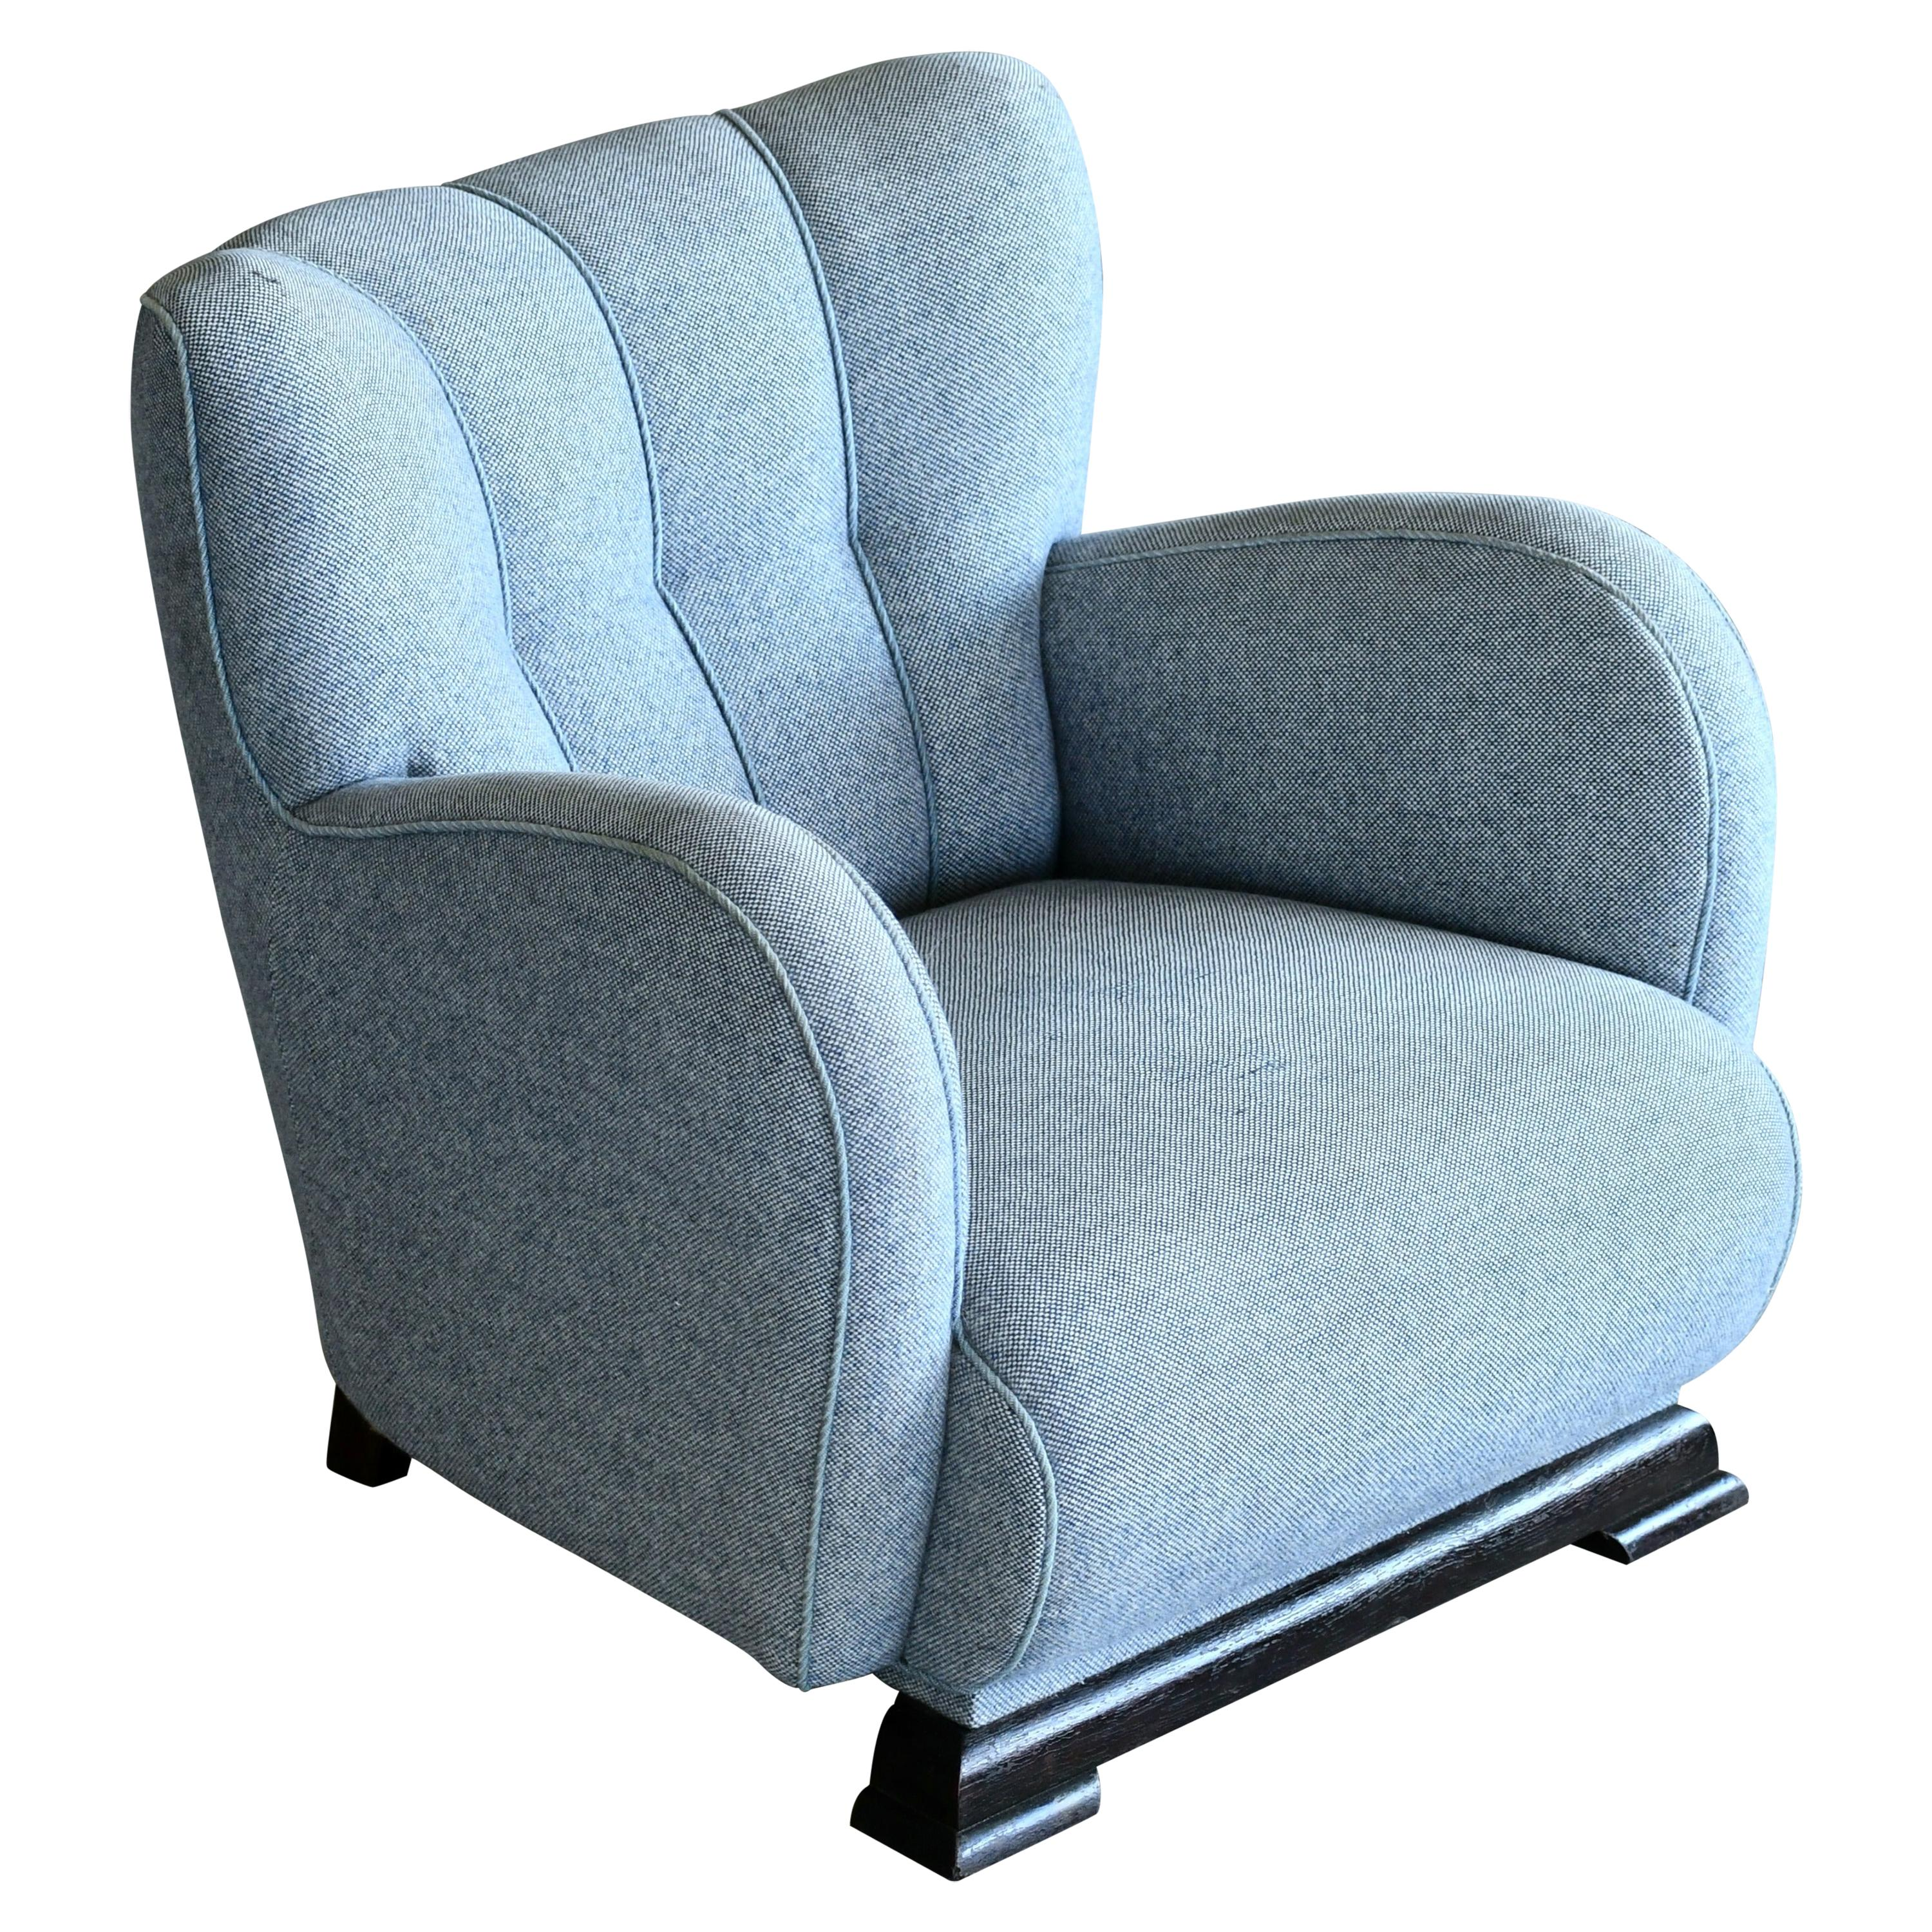 1940s Art Deco Large-Sized Danish Club Chair in Style of Fritz Hansen